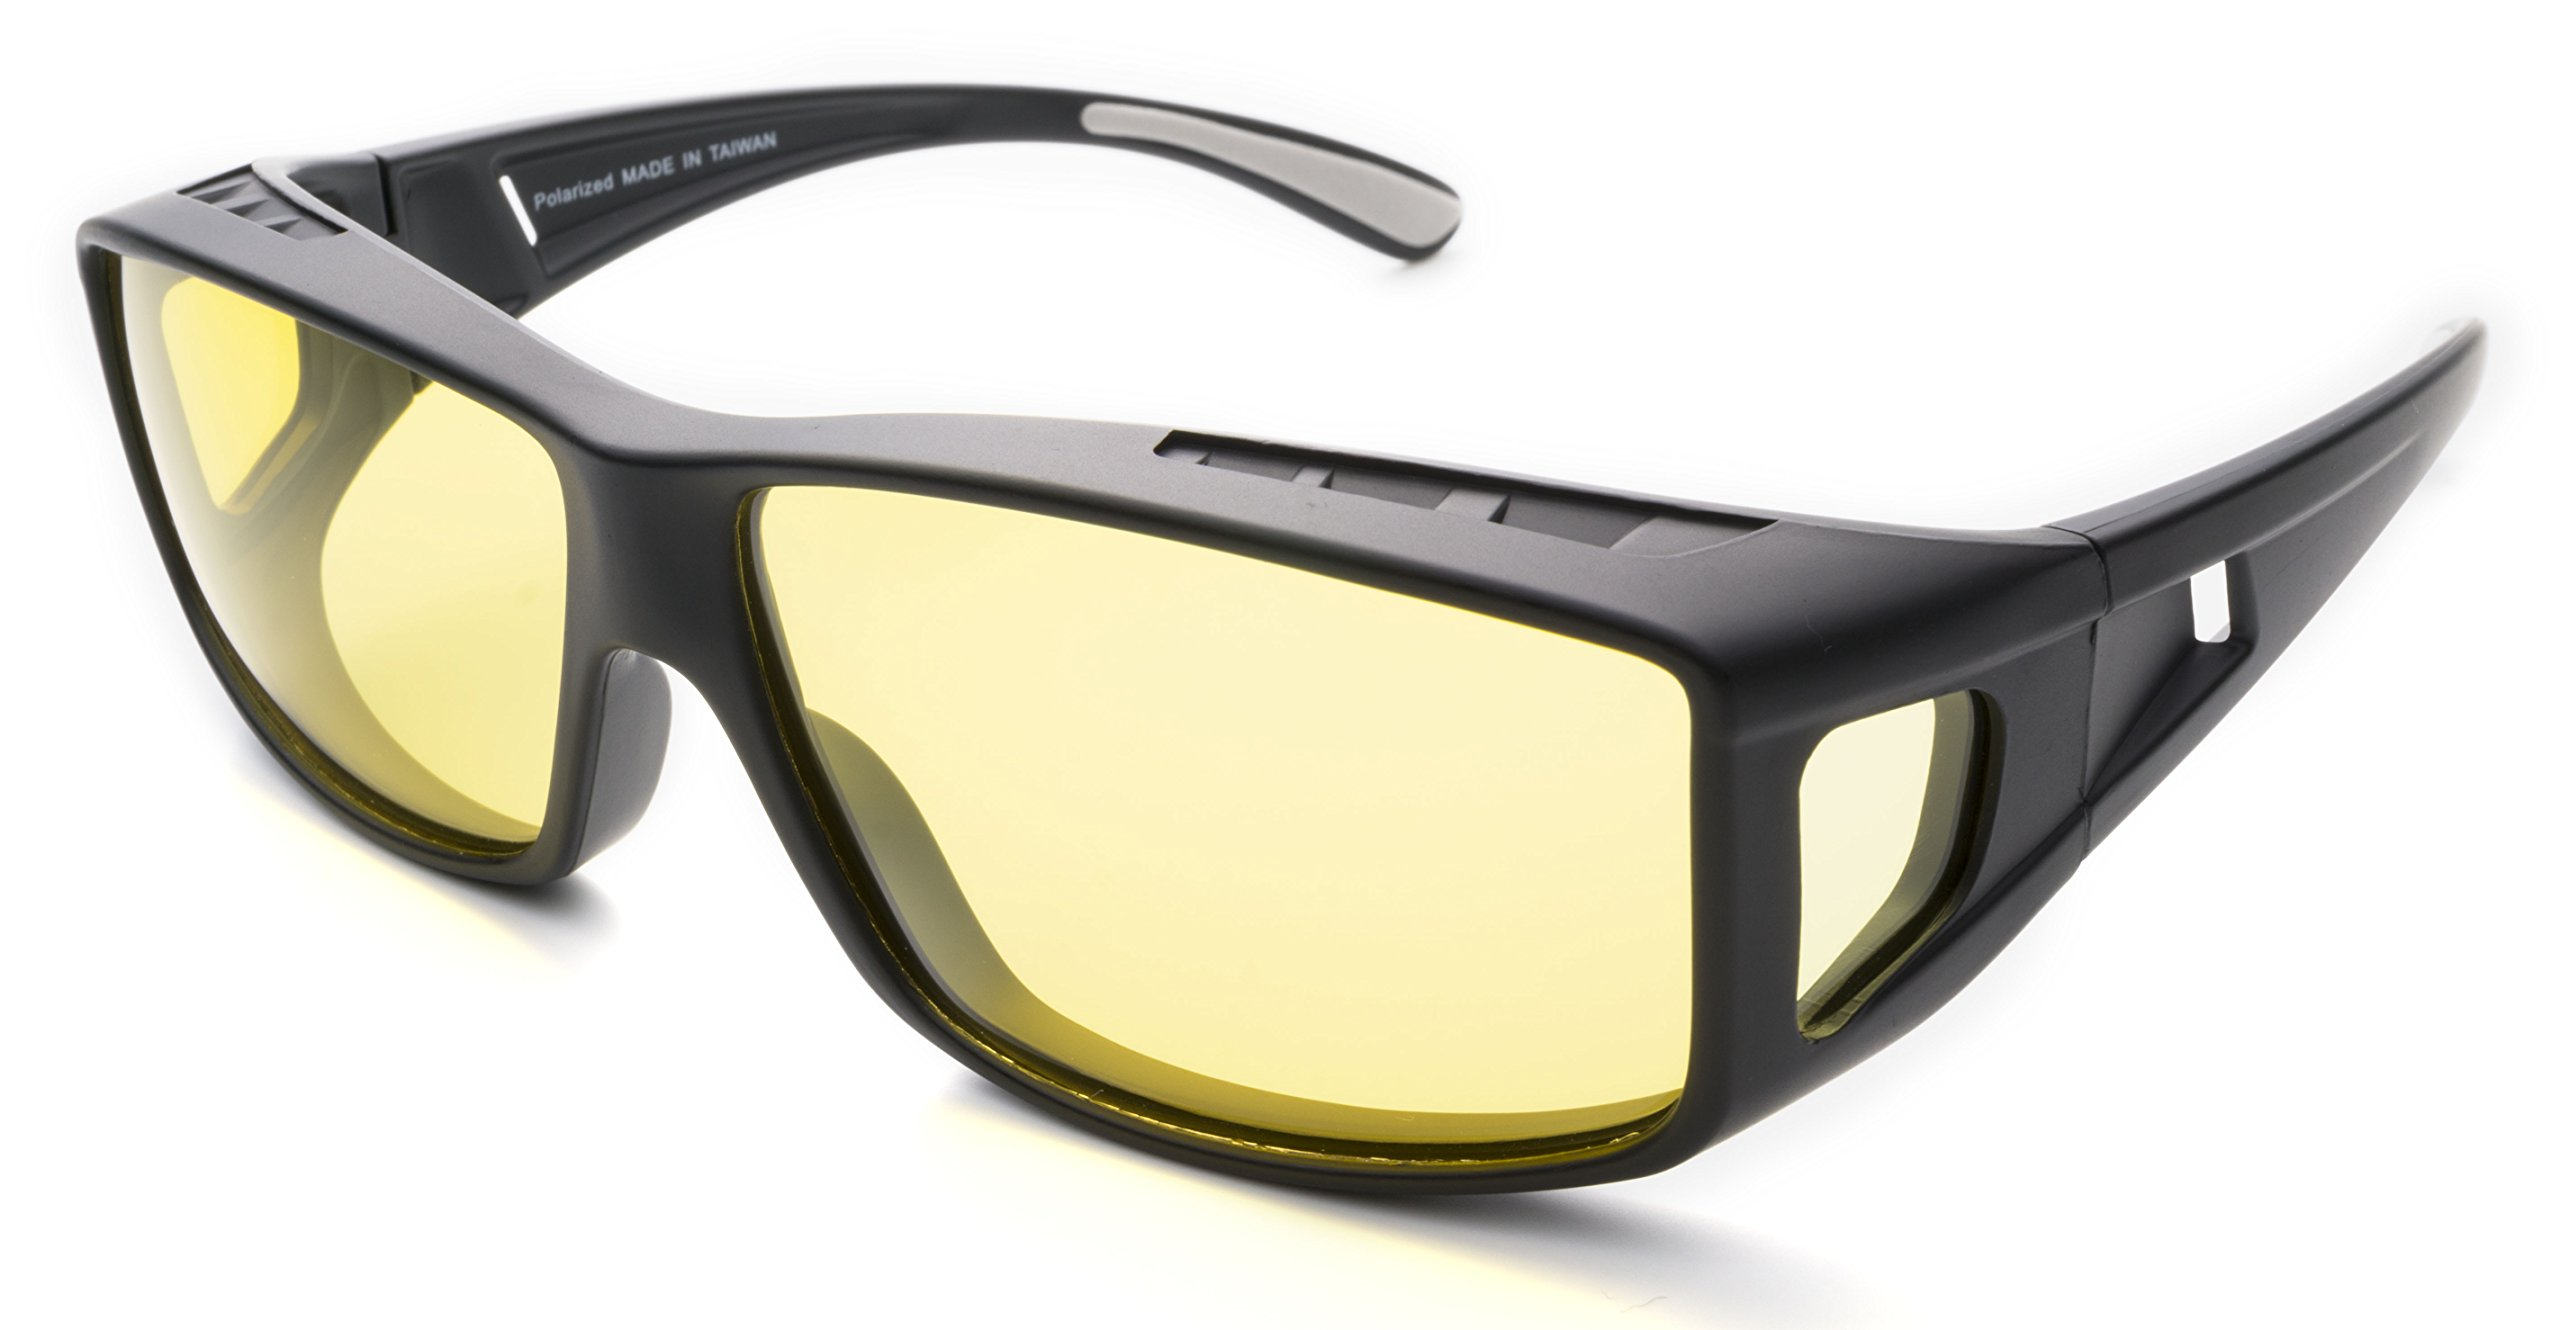 Fitover Night Driving Glasses (Charcoal, Yellow) by Mr.O (Image #1)